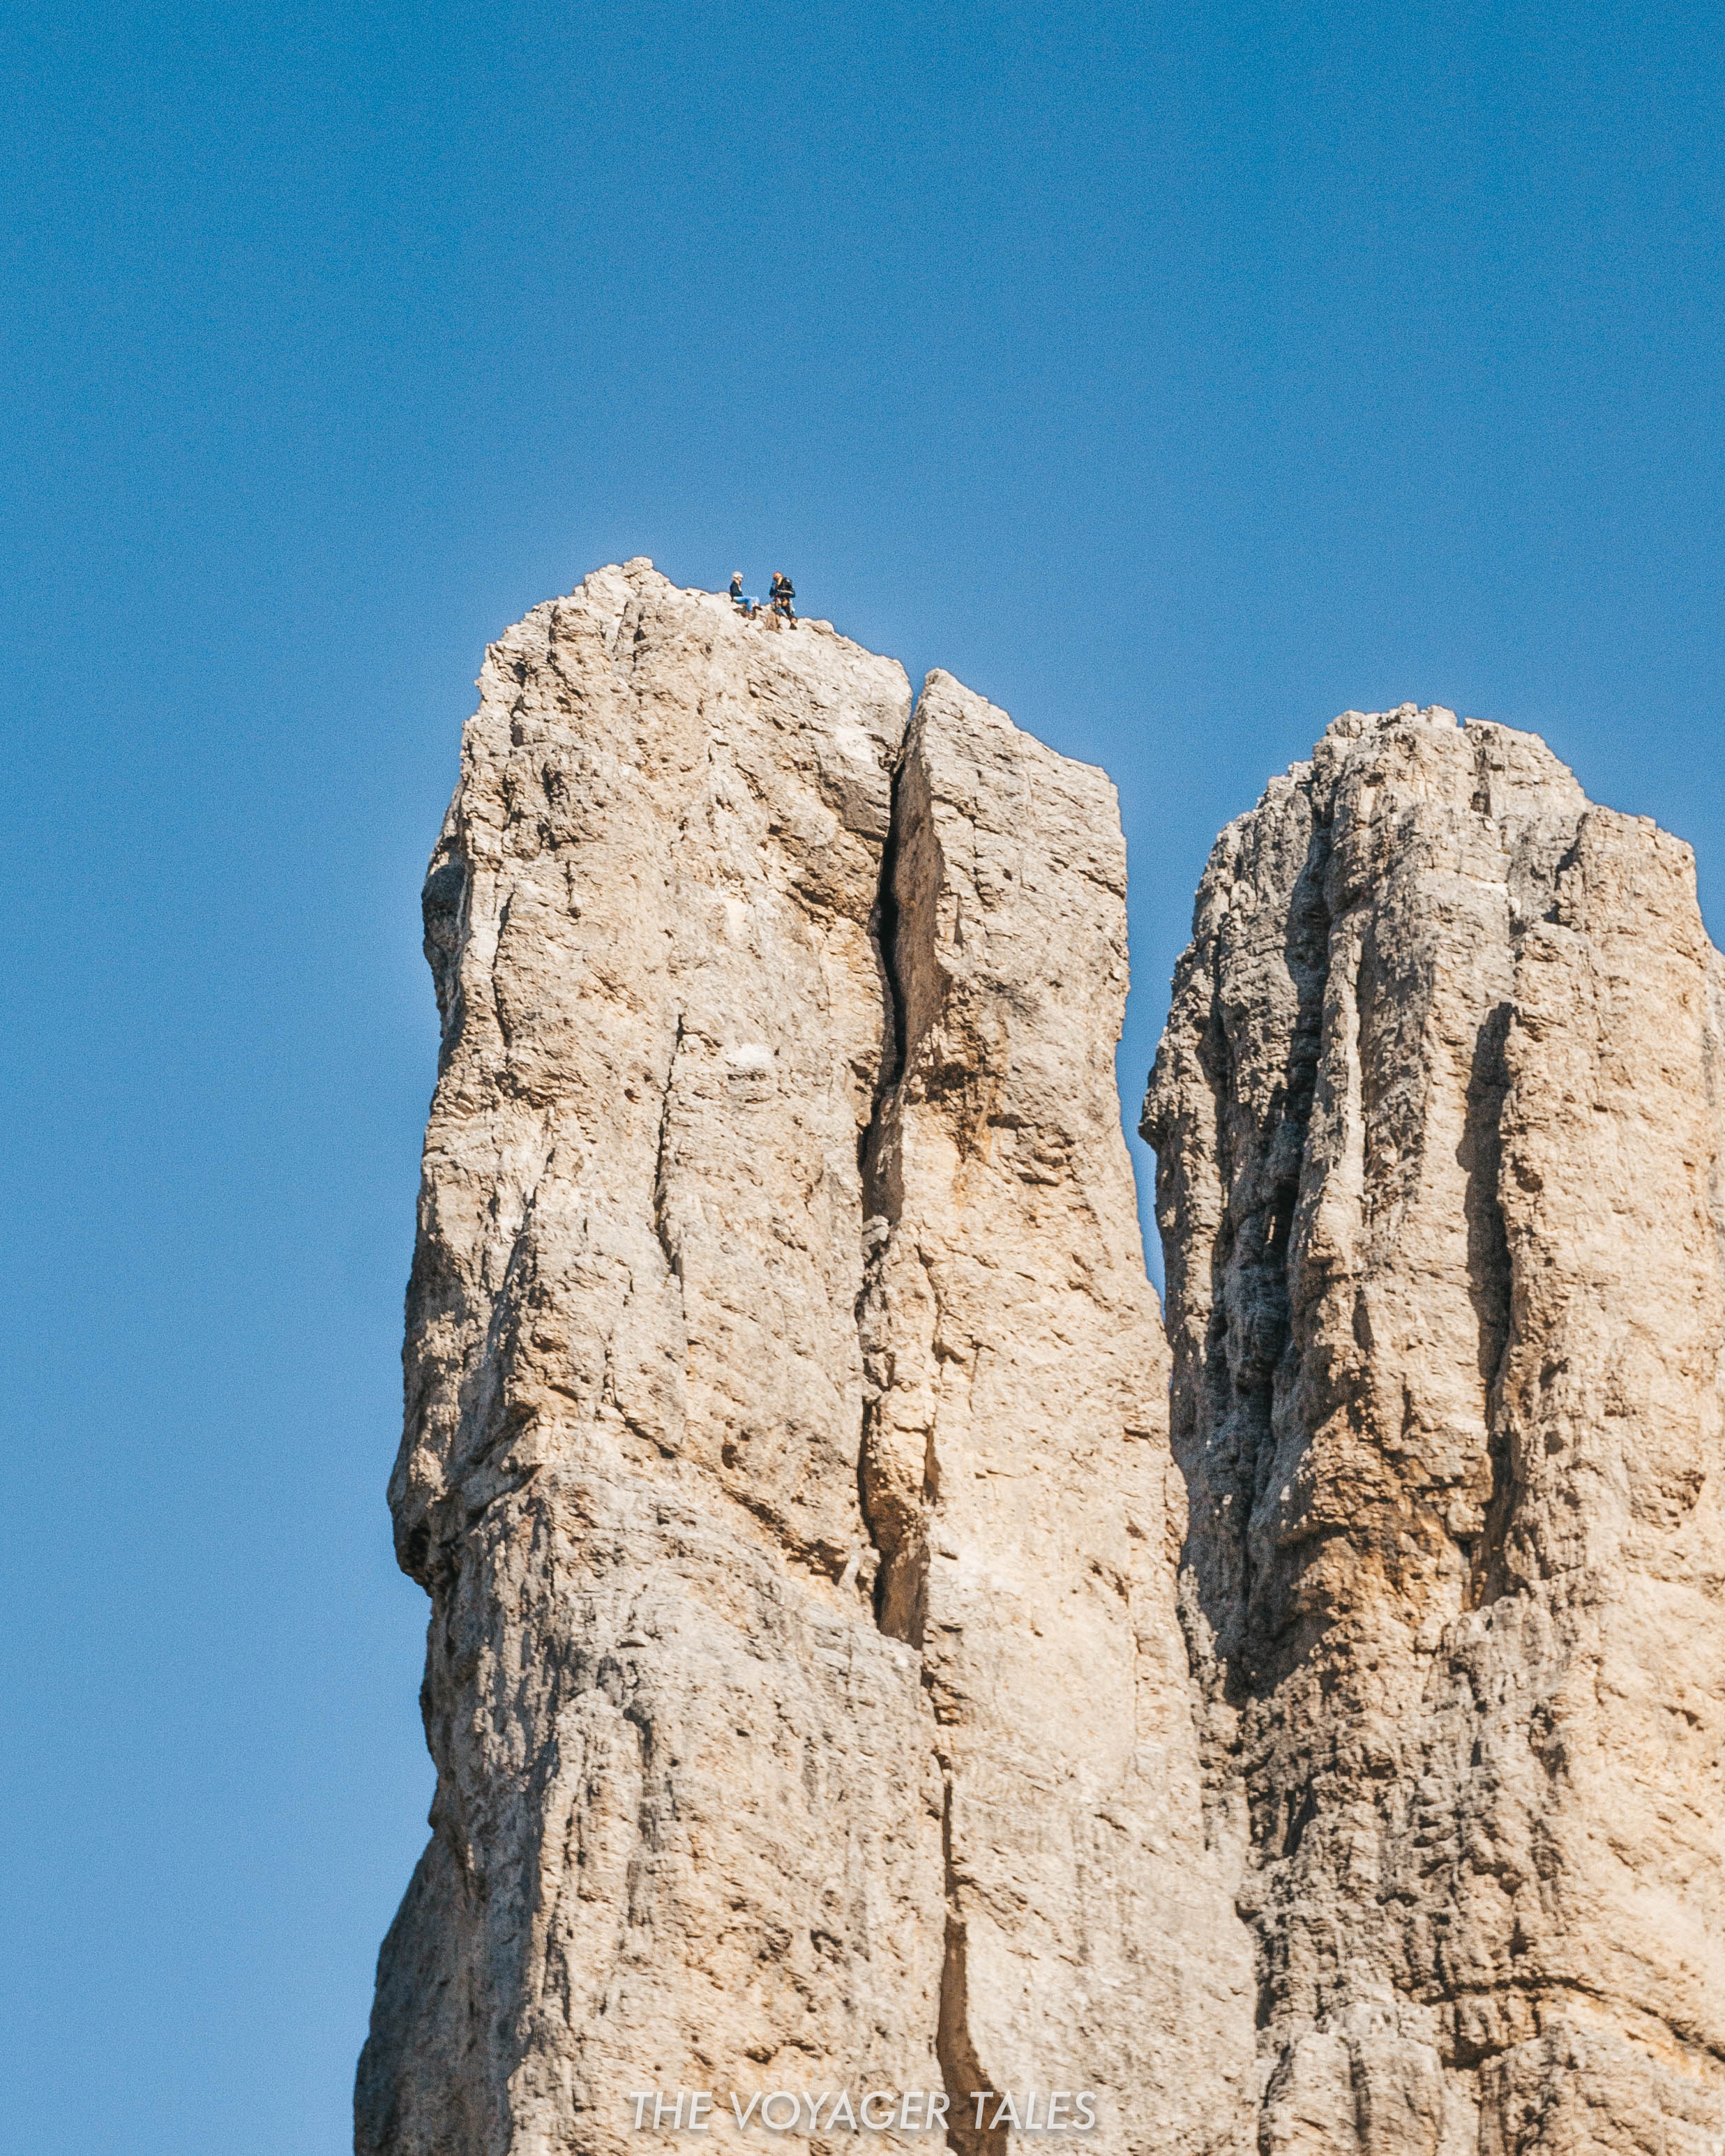 Rock climbers enjoying the view from the summit of the Vajolet Towers, Italy